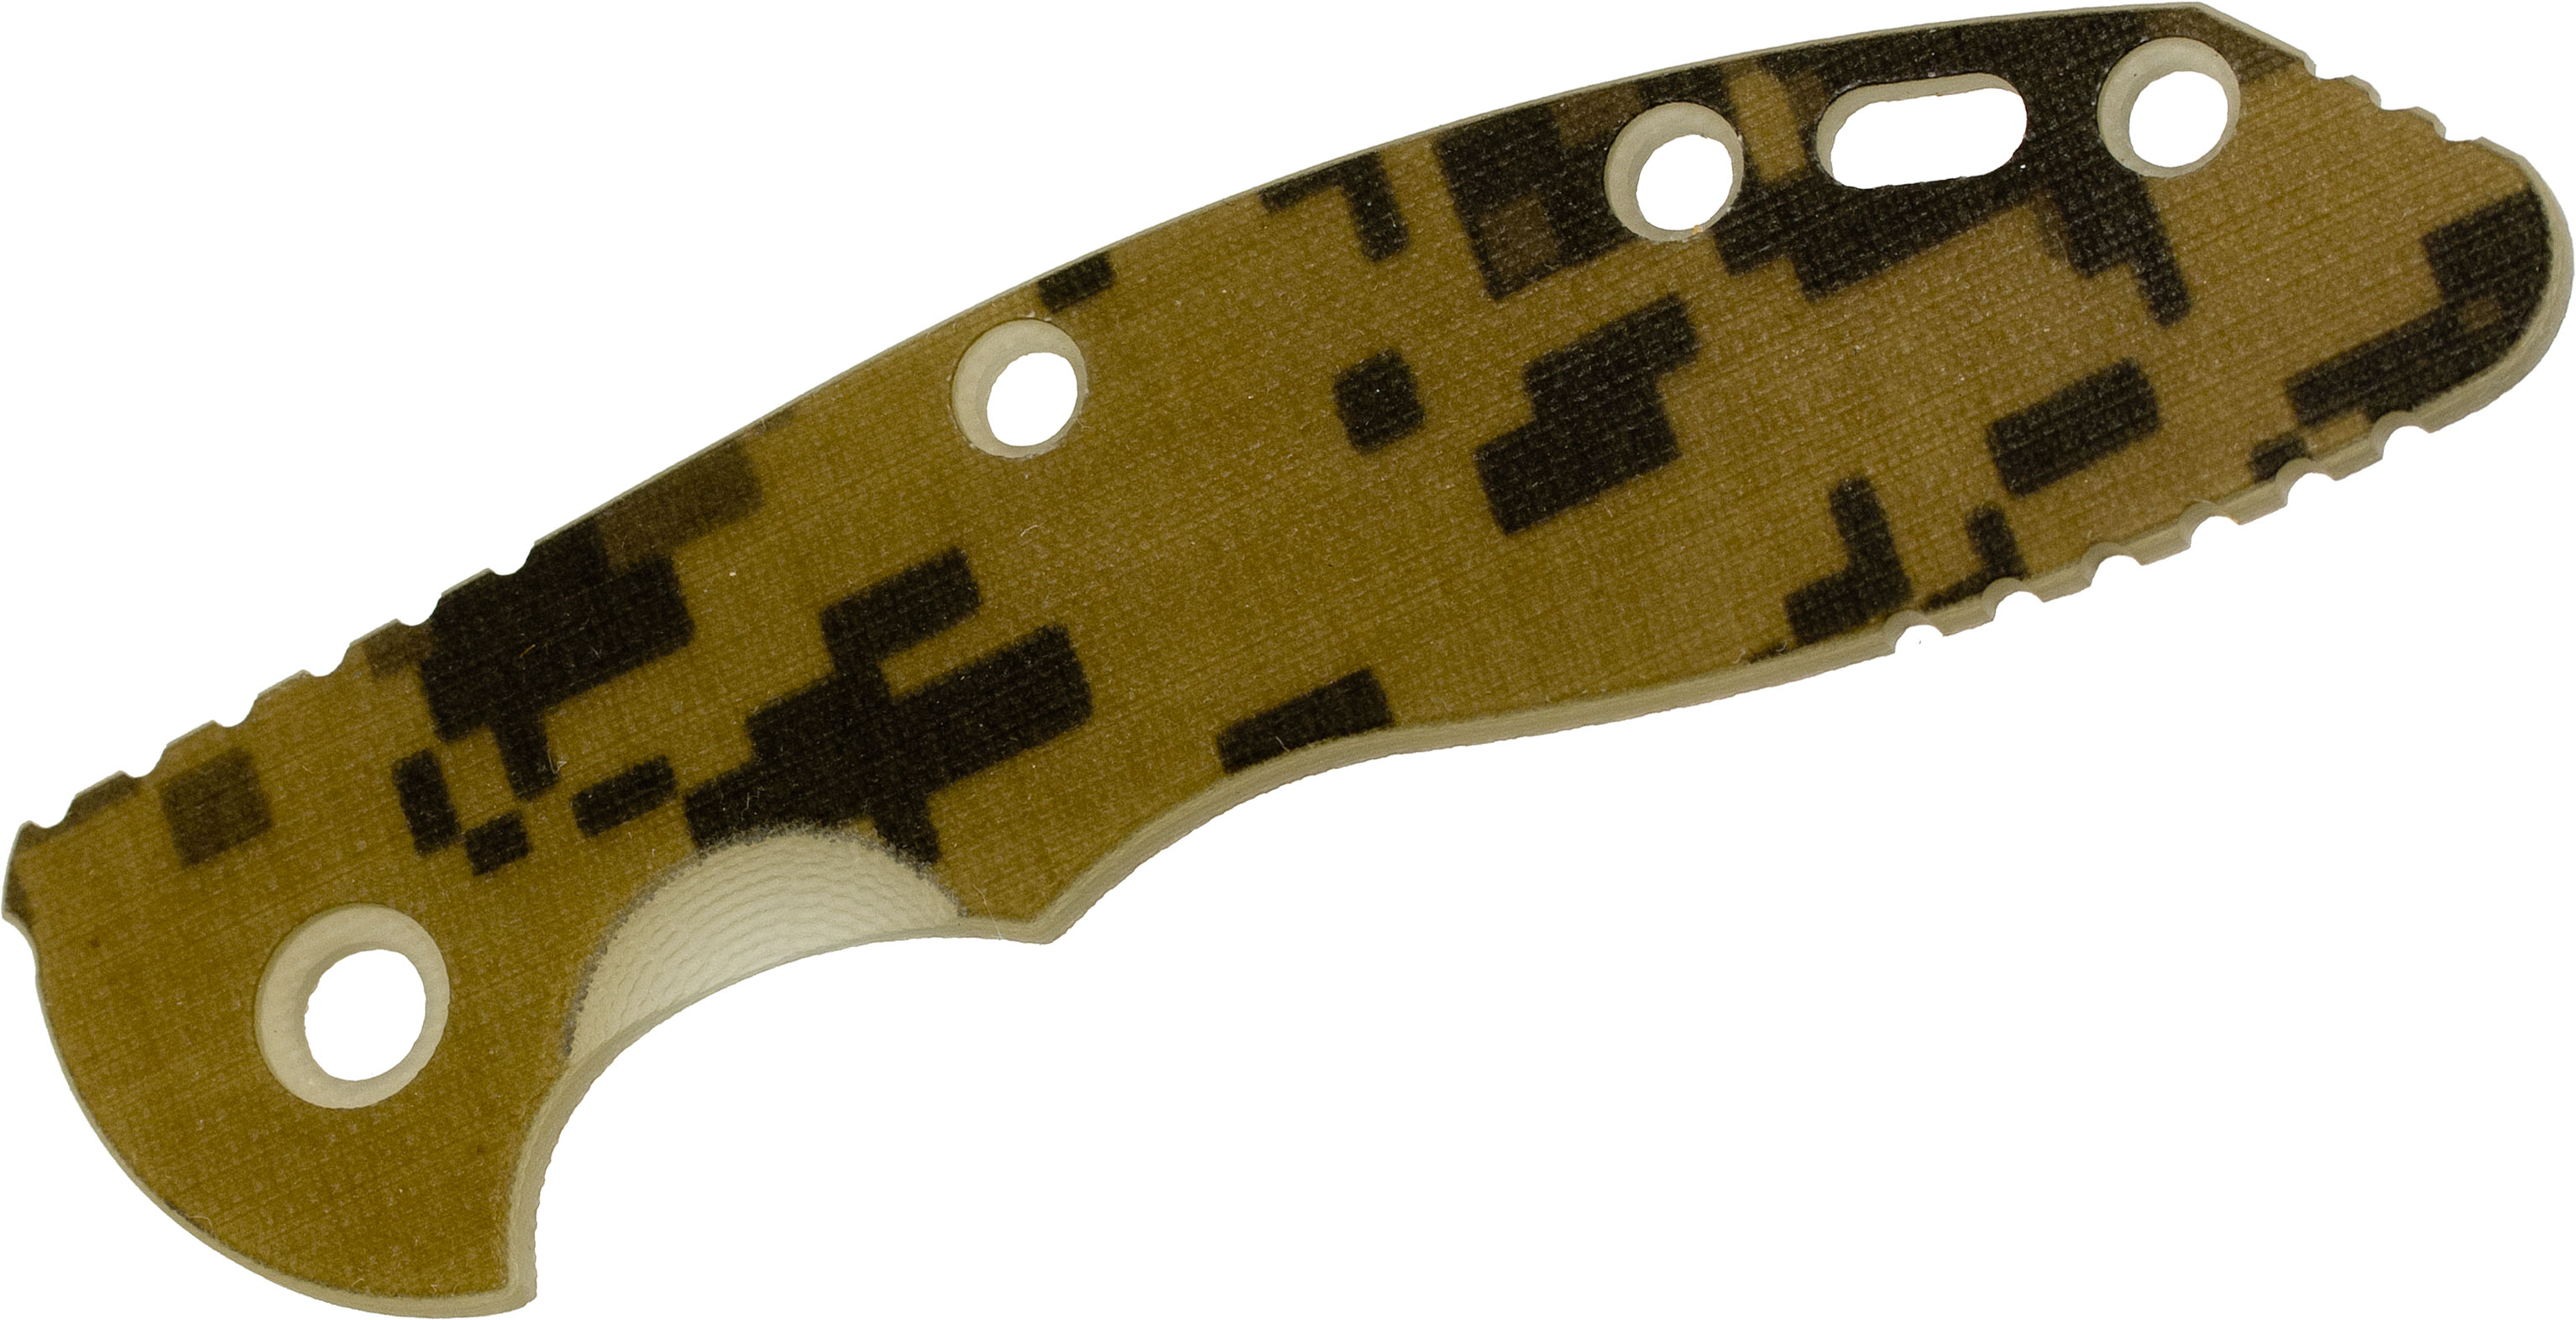 Rick Hinderer Knives ACU Camo G10 Scale for XM-18 3.5 inch Model